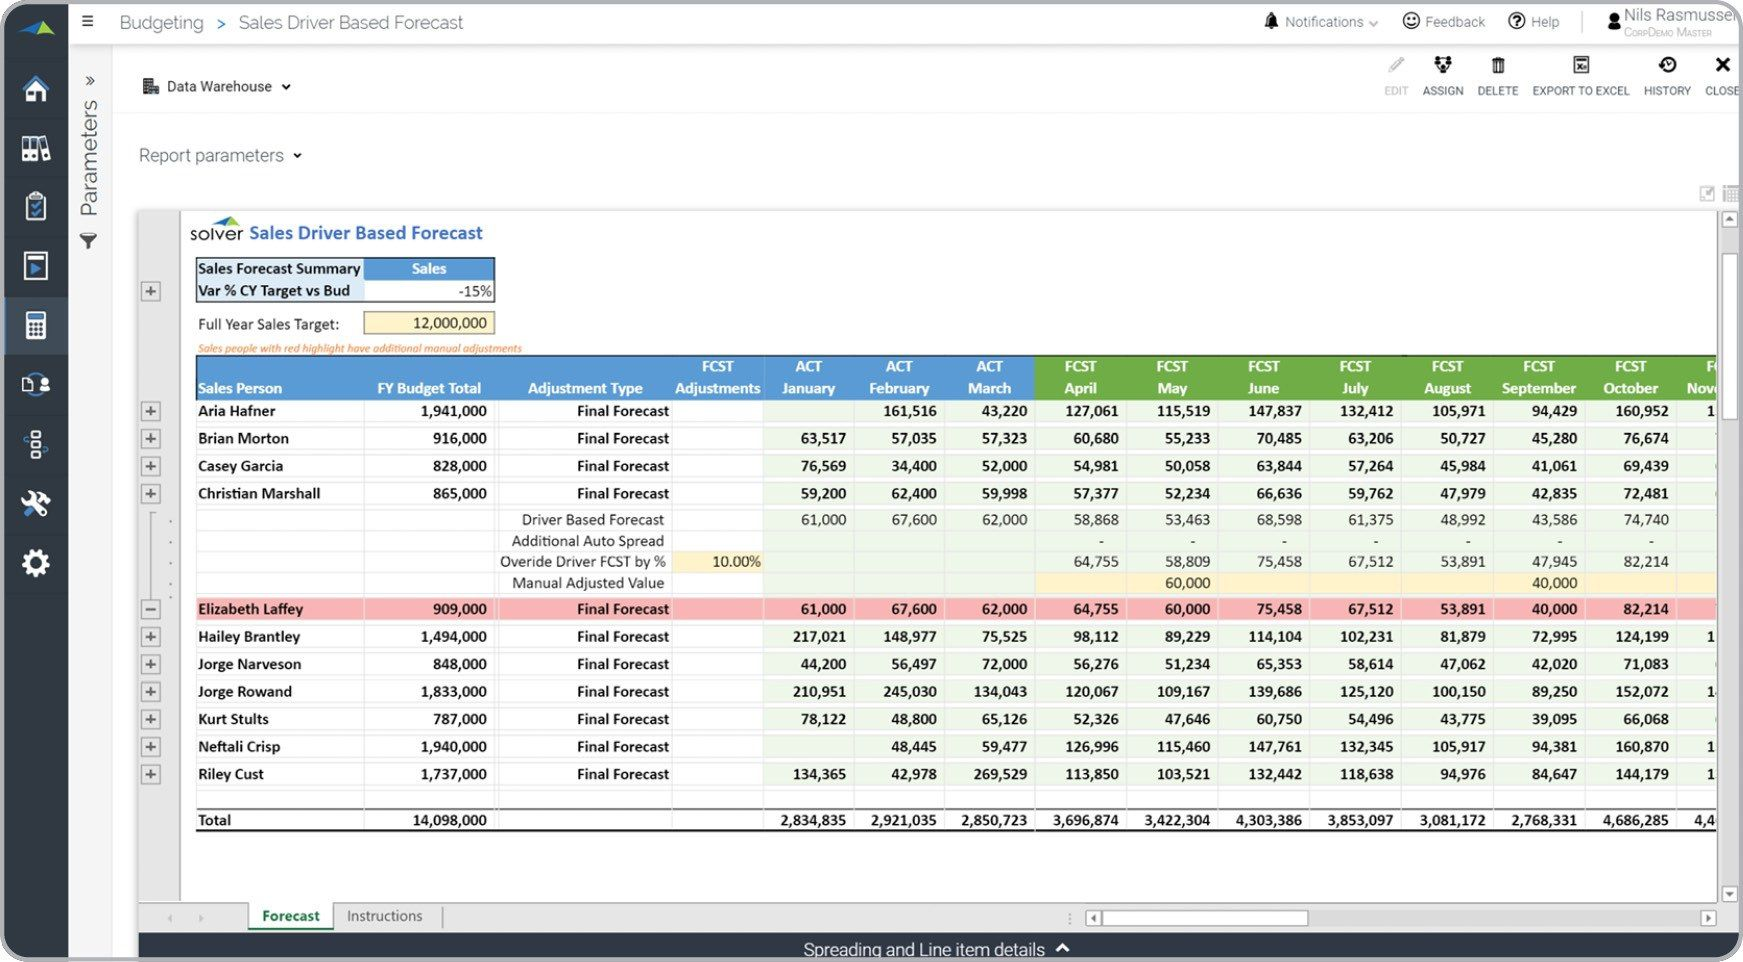 003 Amazing Line Item Operating Budget Example Sample  Line-item For Police Department Of Template Meaning WithFull